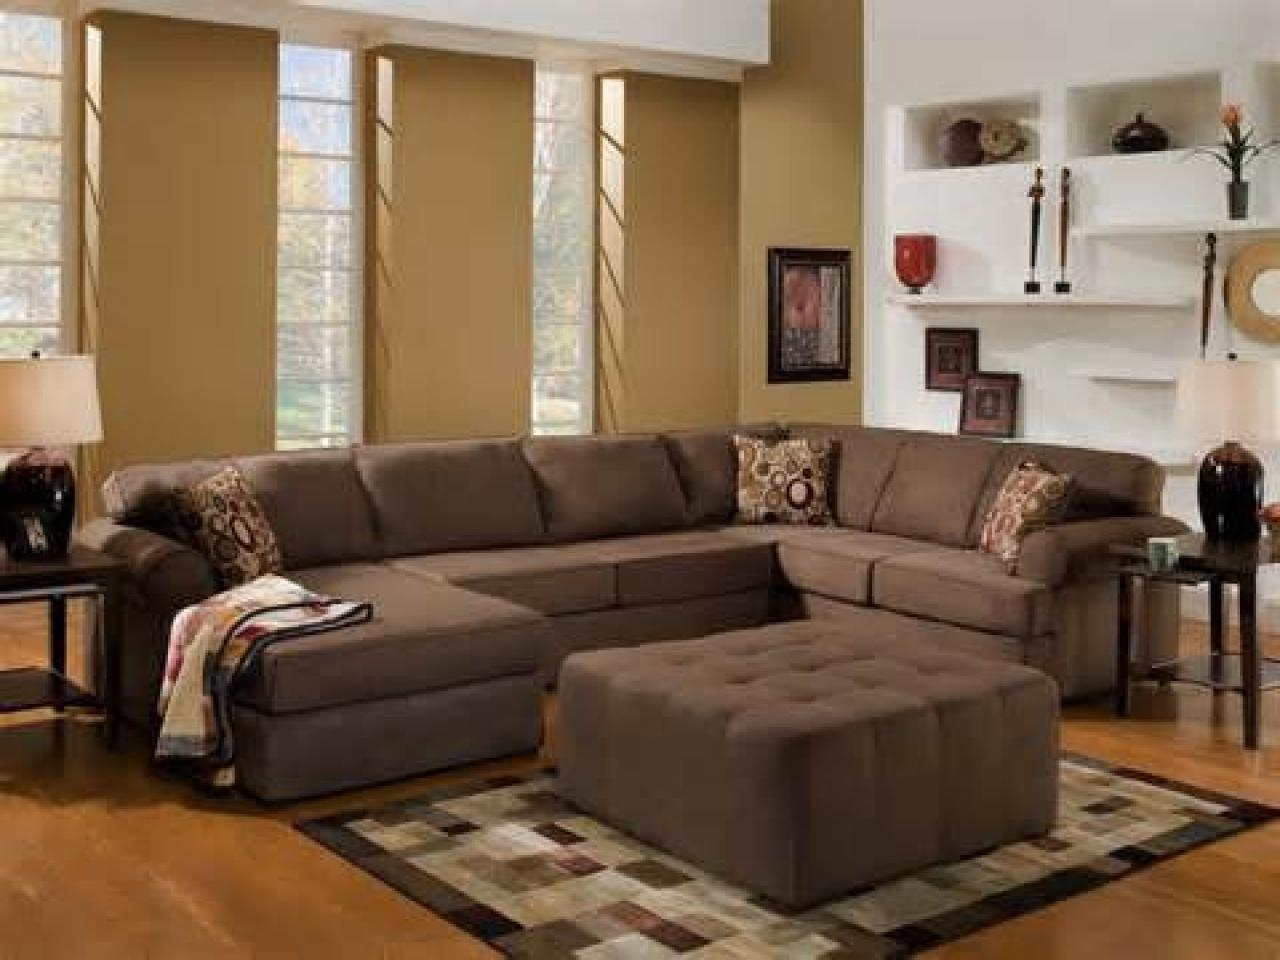 Sofas Center : Sofas On Sale Or Clearance Big Lotsbig Lots With Regard To Big Lots Sofas (View 19 of 20)